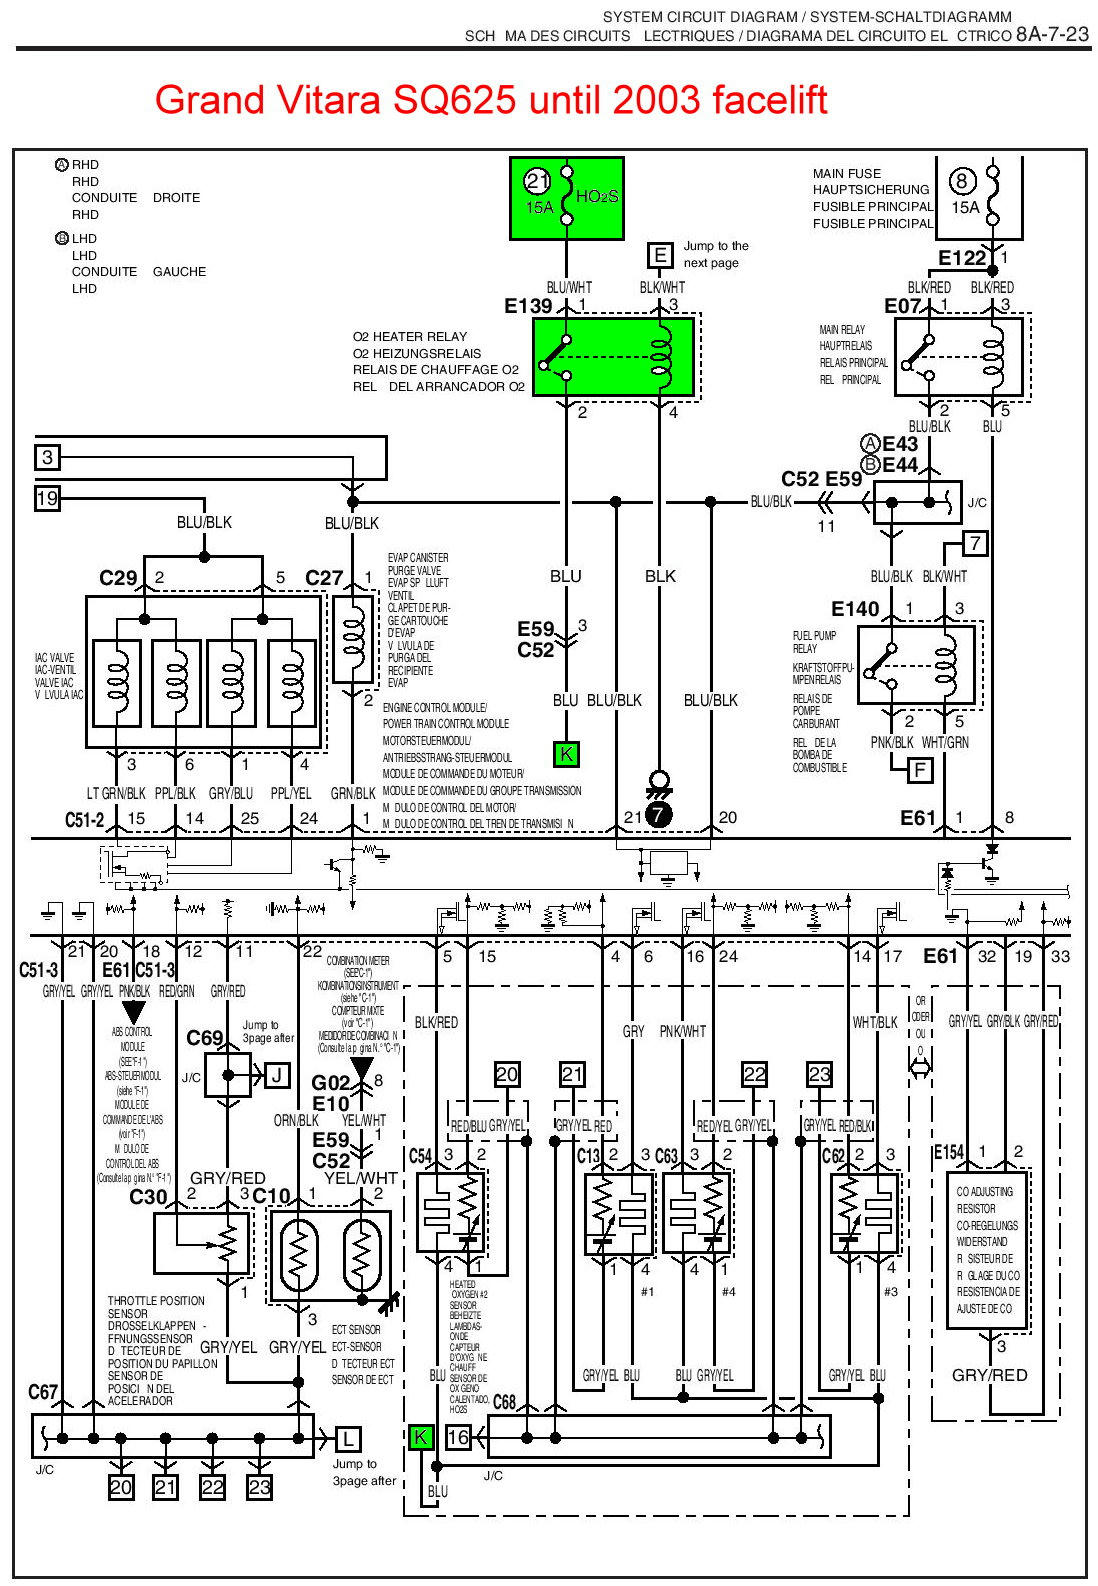 03 Chevy Tracker Ignition Fuse Wiring Diagram : 45 Wiring